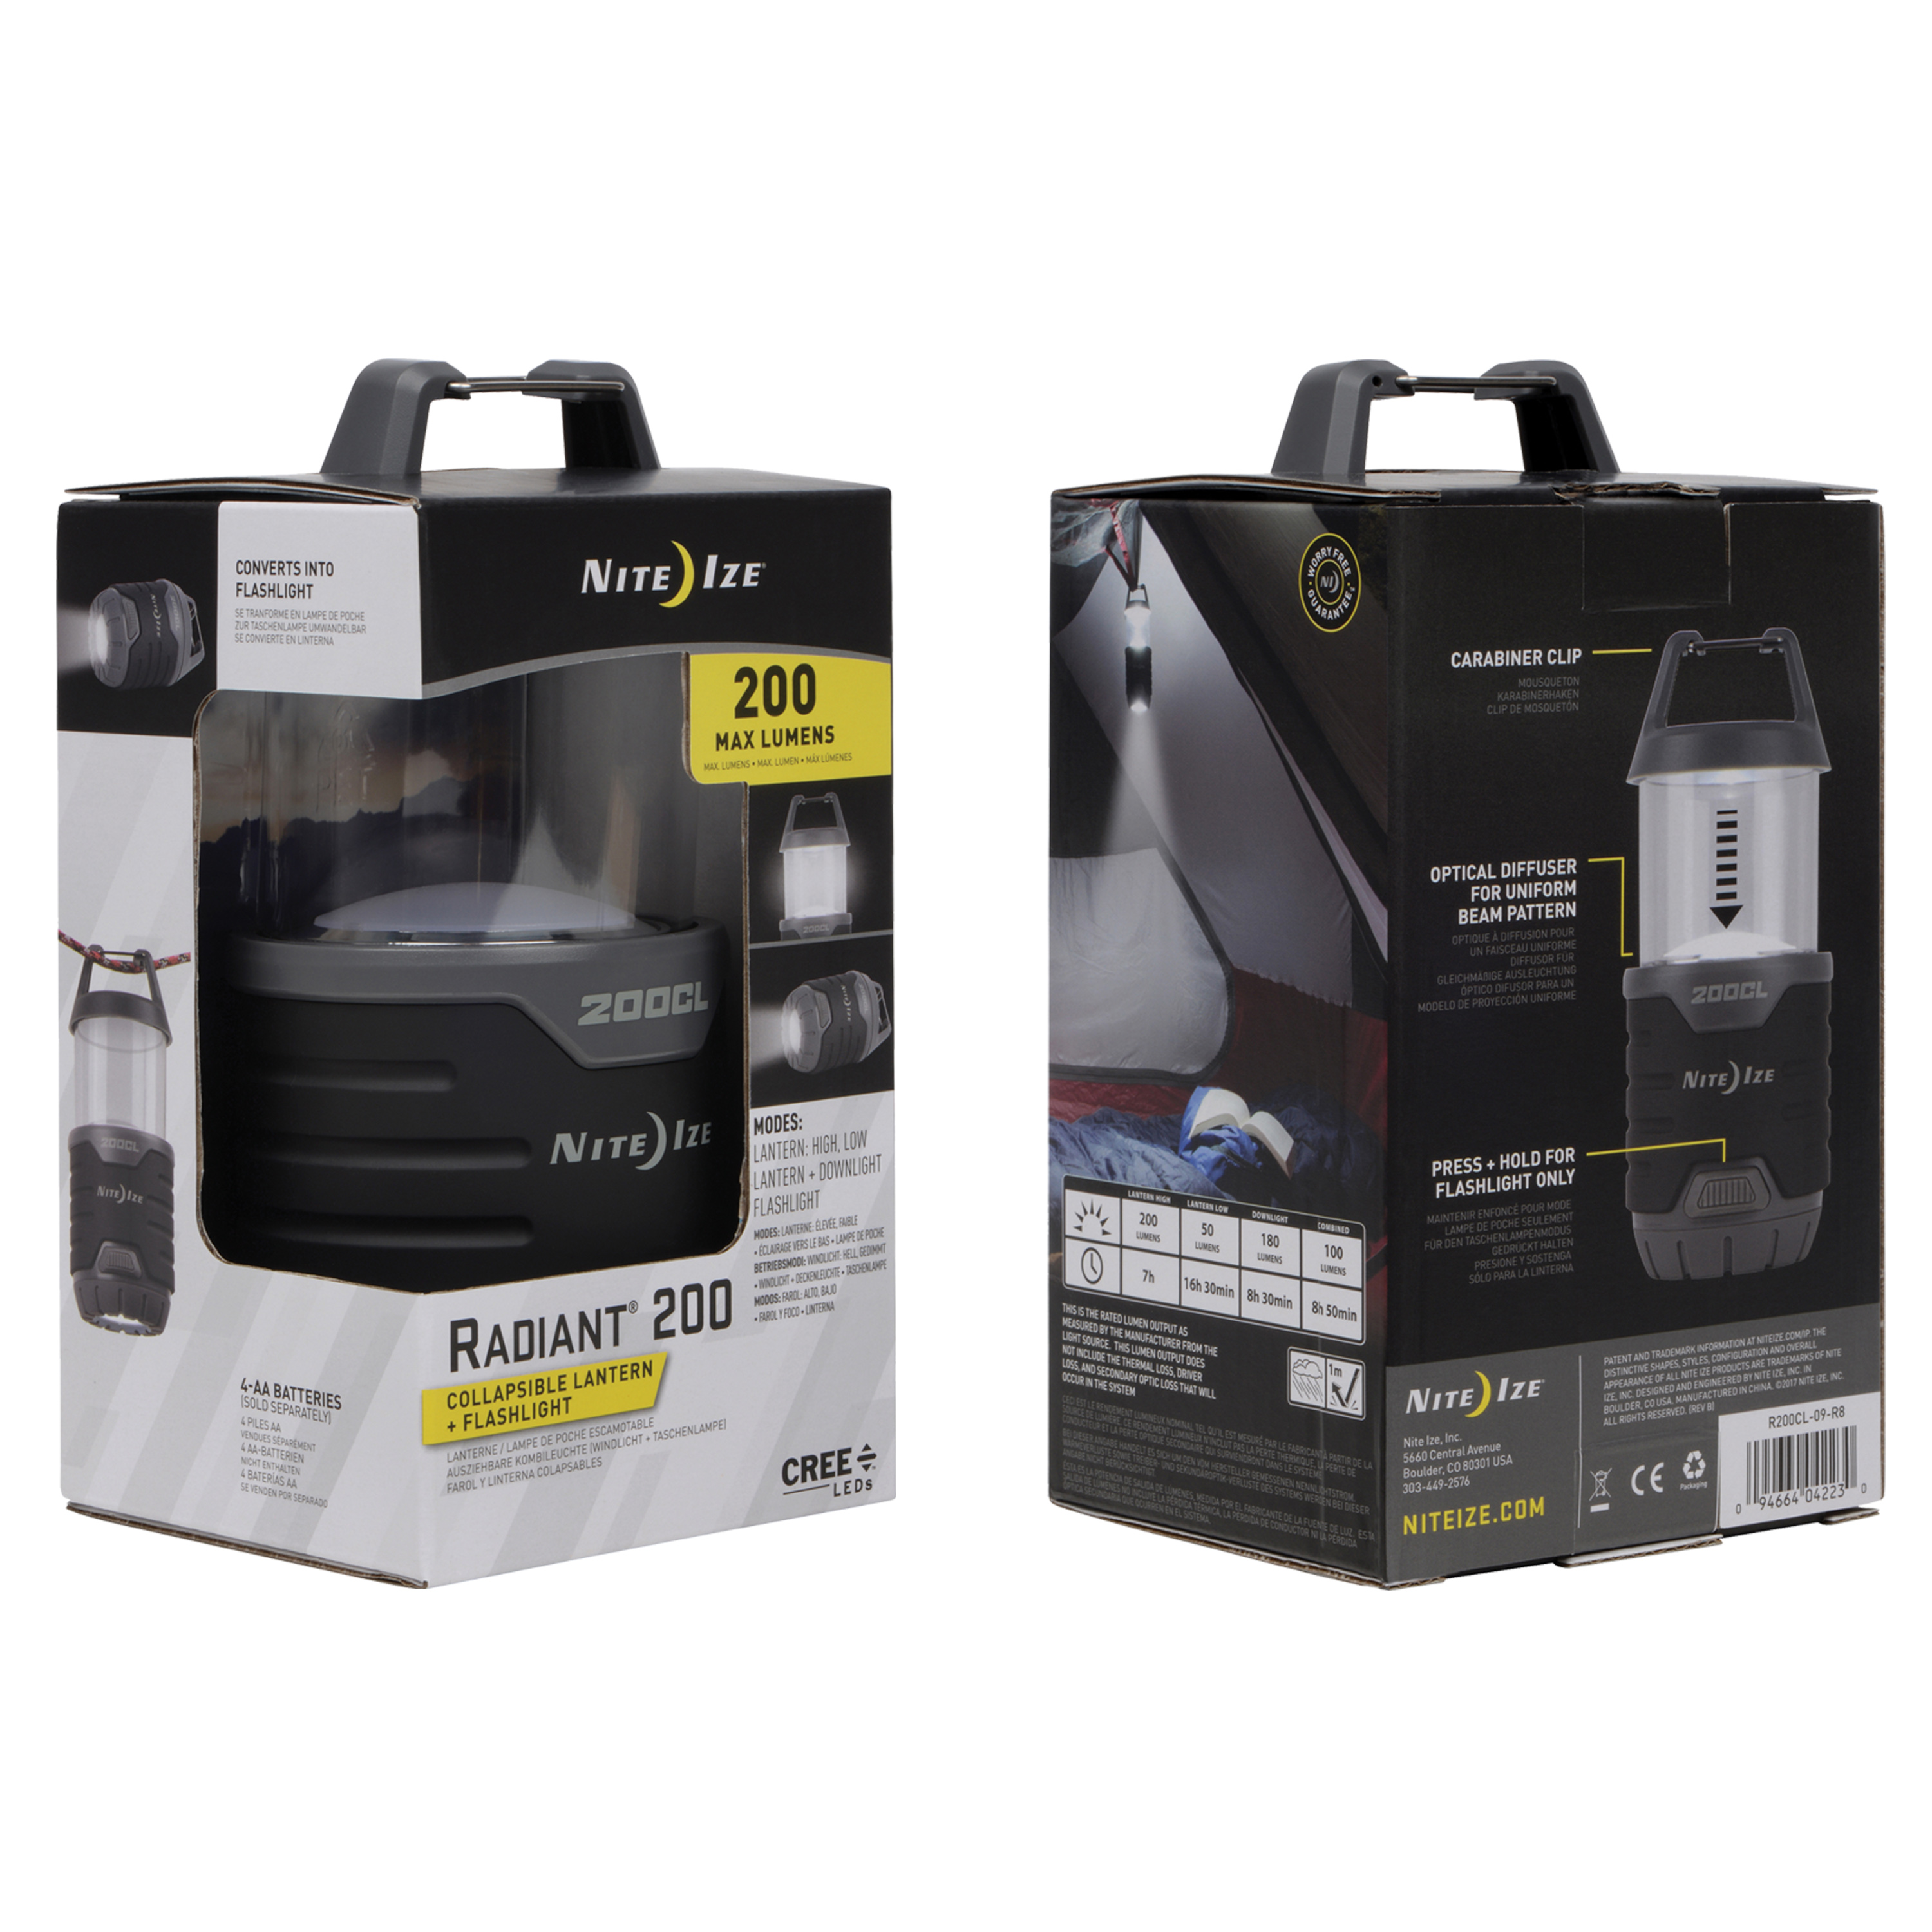 Packing image for Radiant® 200 2-in-1 Collapsible Lantern